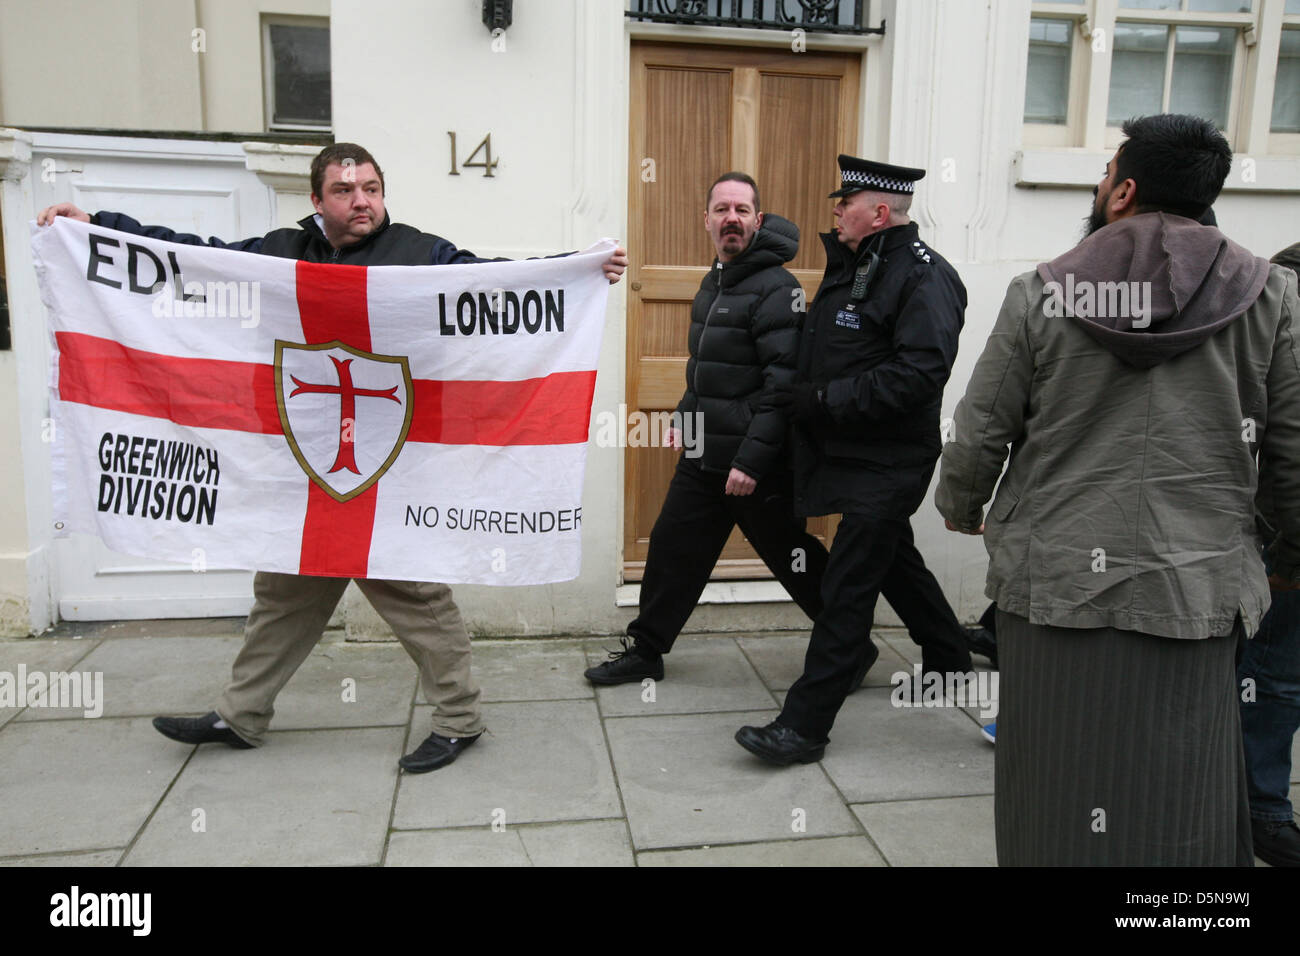 London, UK. 5th April 2013. Angry right-wing confronting an extremist Muslim pressure group protest outside the - Stock Image